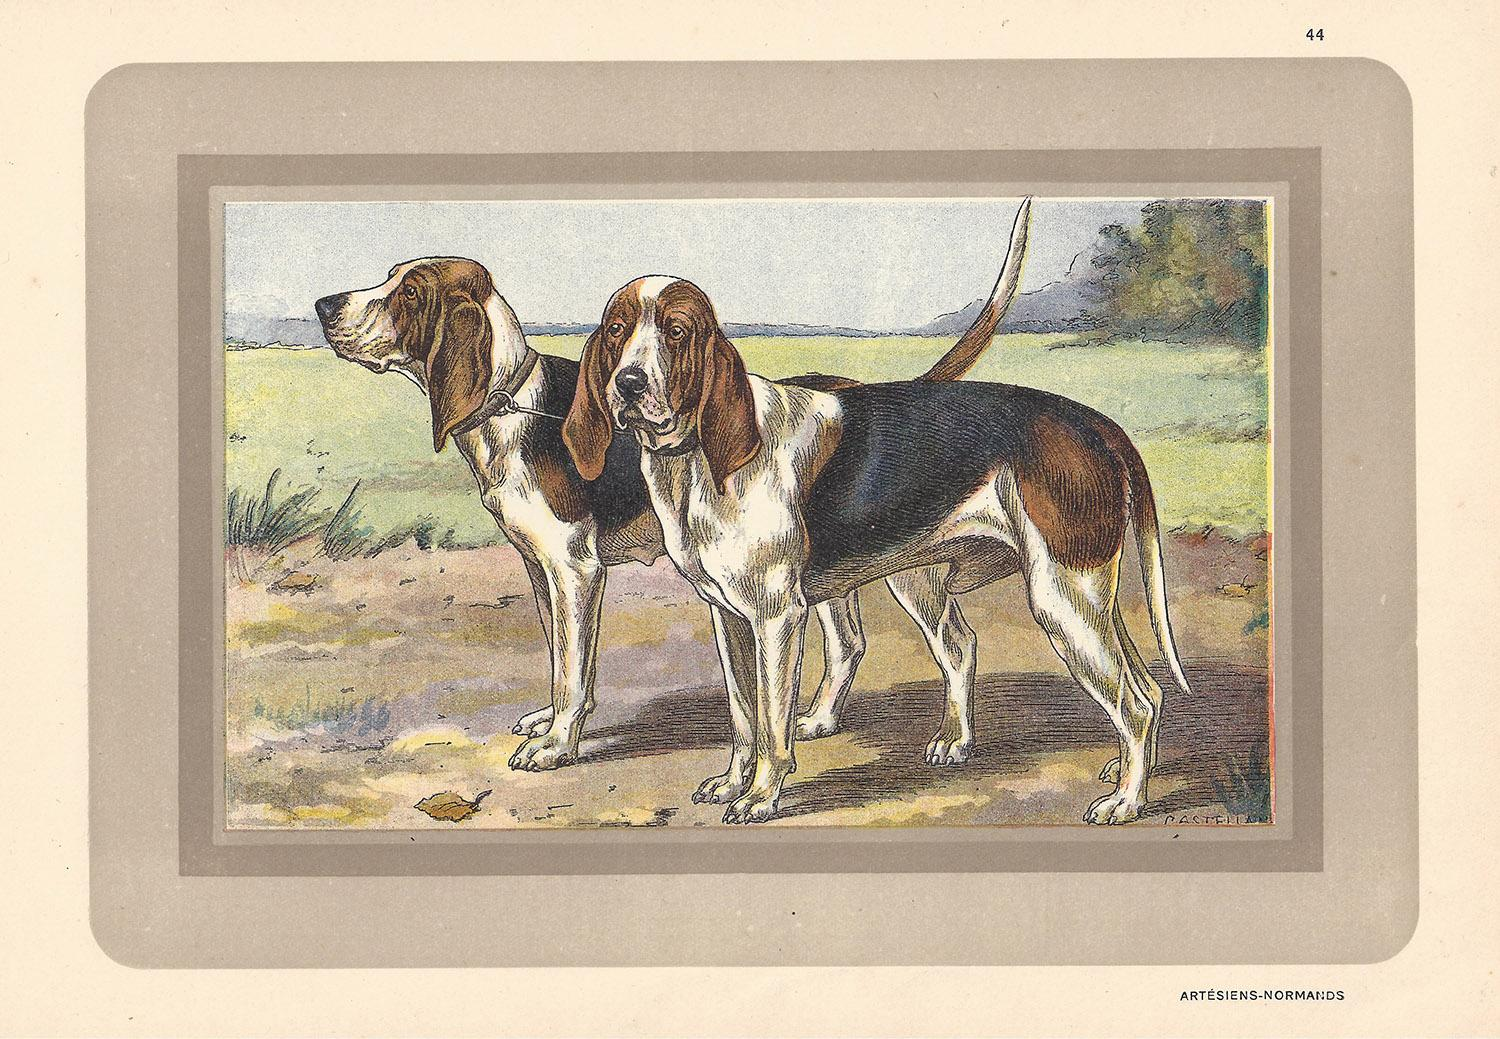 Artesiens Normands- Norman Artesian Bassets, French dog chromolithograph, 1930s